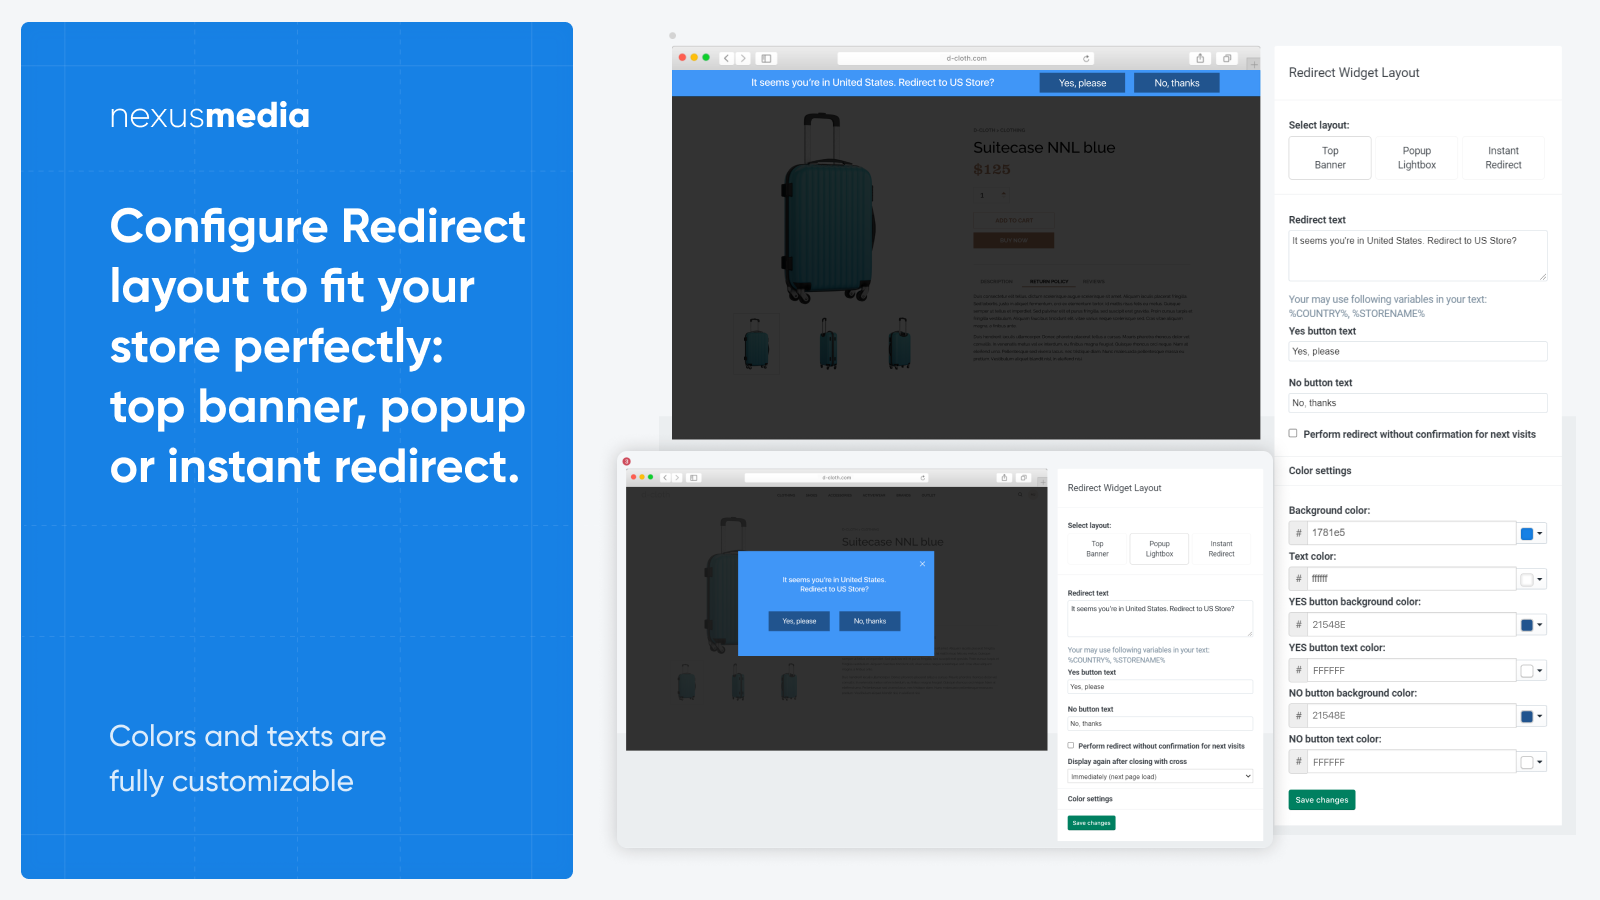 Customize redirect layout to fit your needs